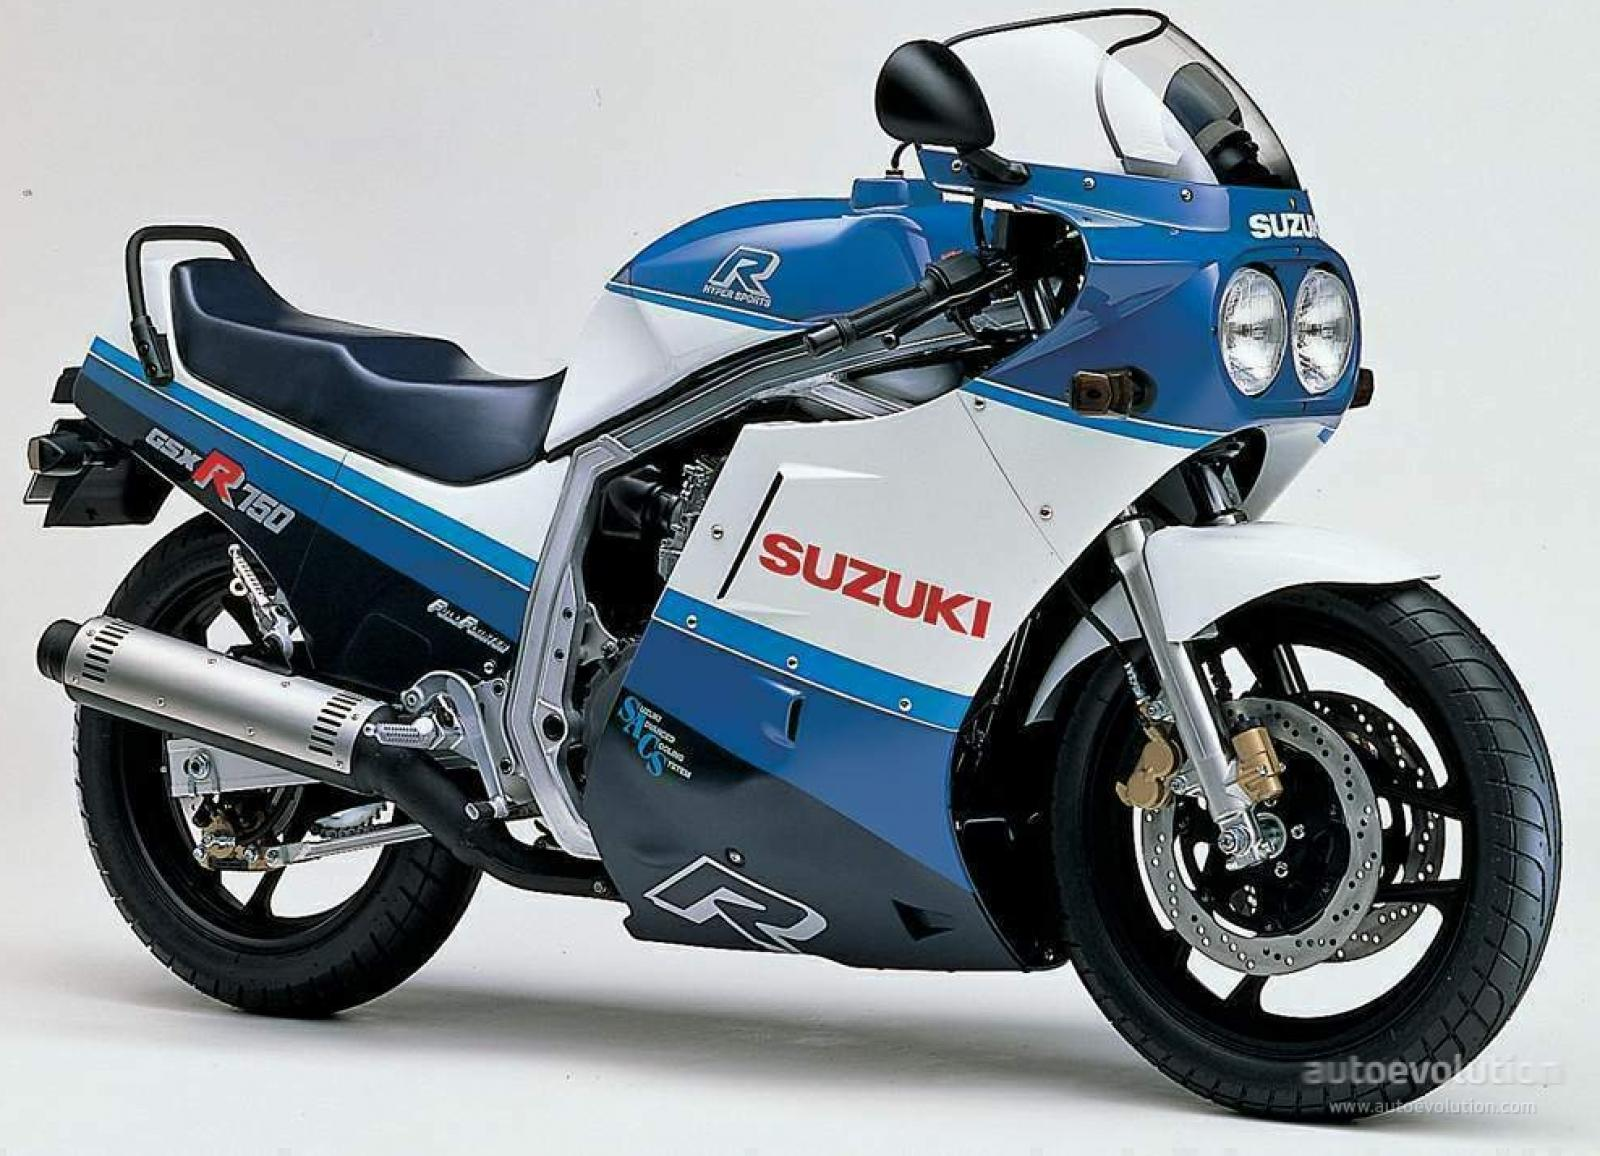 1988 suzuki gsx r 750 moto zombdrive com. Black Bedroom Furniture Sets. Home Design Ideas